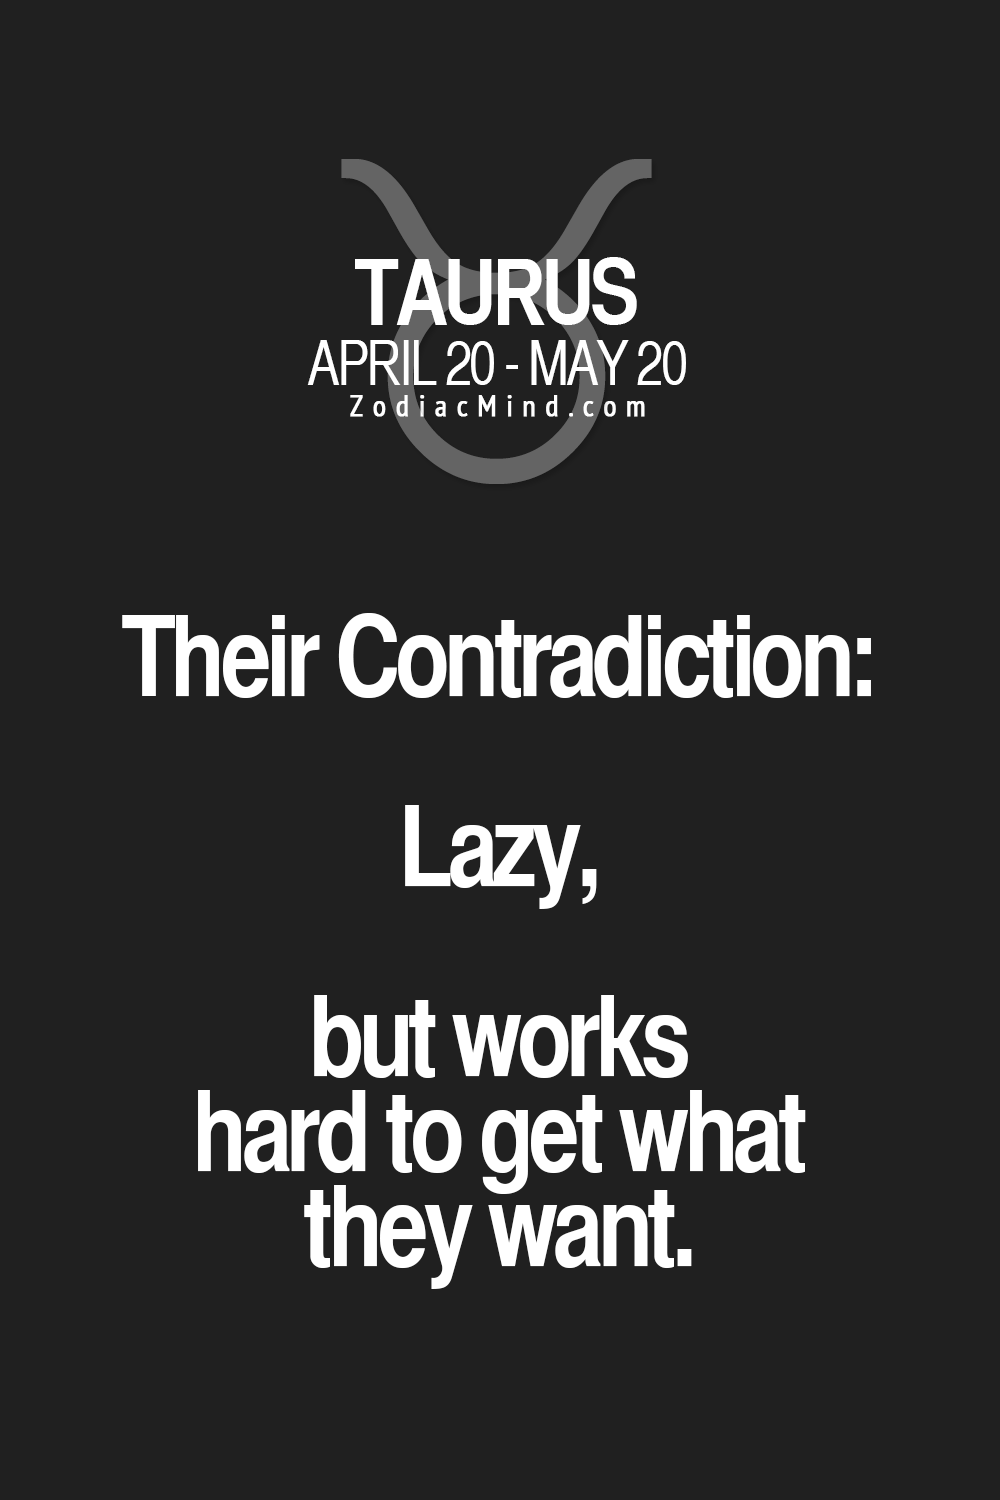 zodiacmind:  Your Zodiac Contradiction!I want to see you